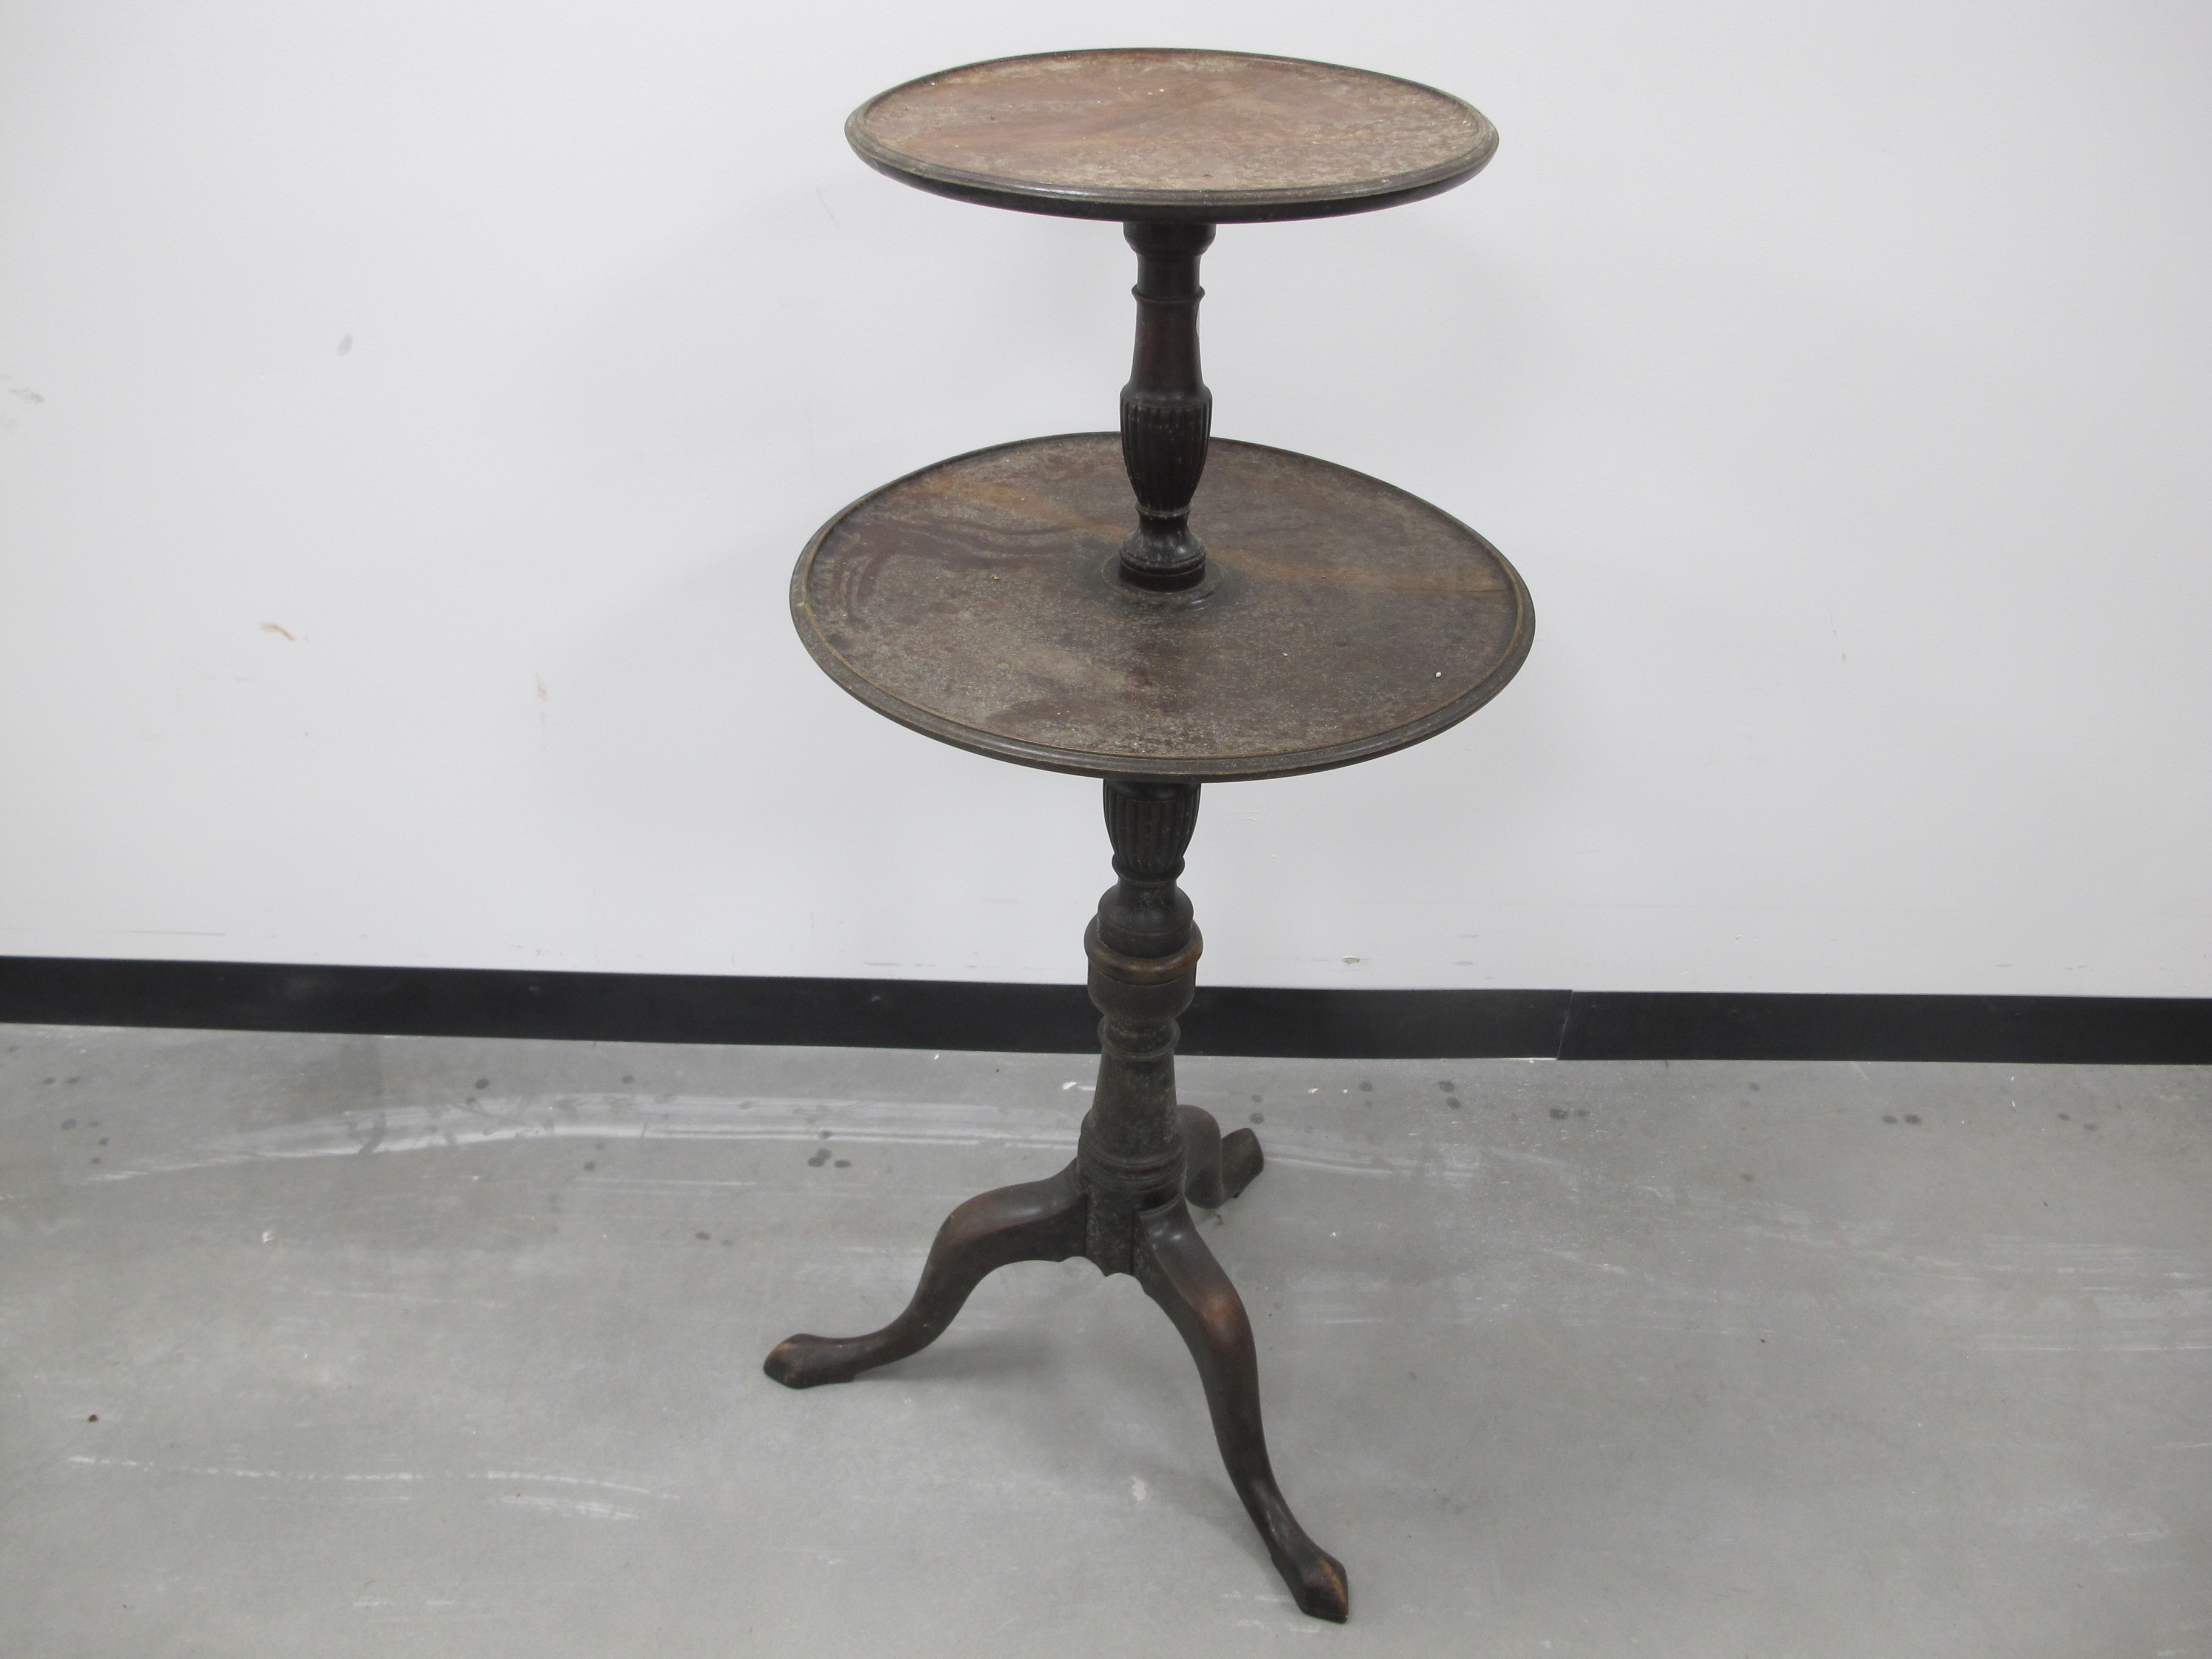 Lot 446 - A 19th Century mahogany two tiered circular dumb waiter, with turned and fluted column, raised on